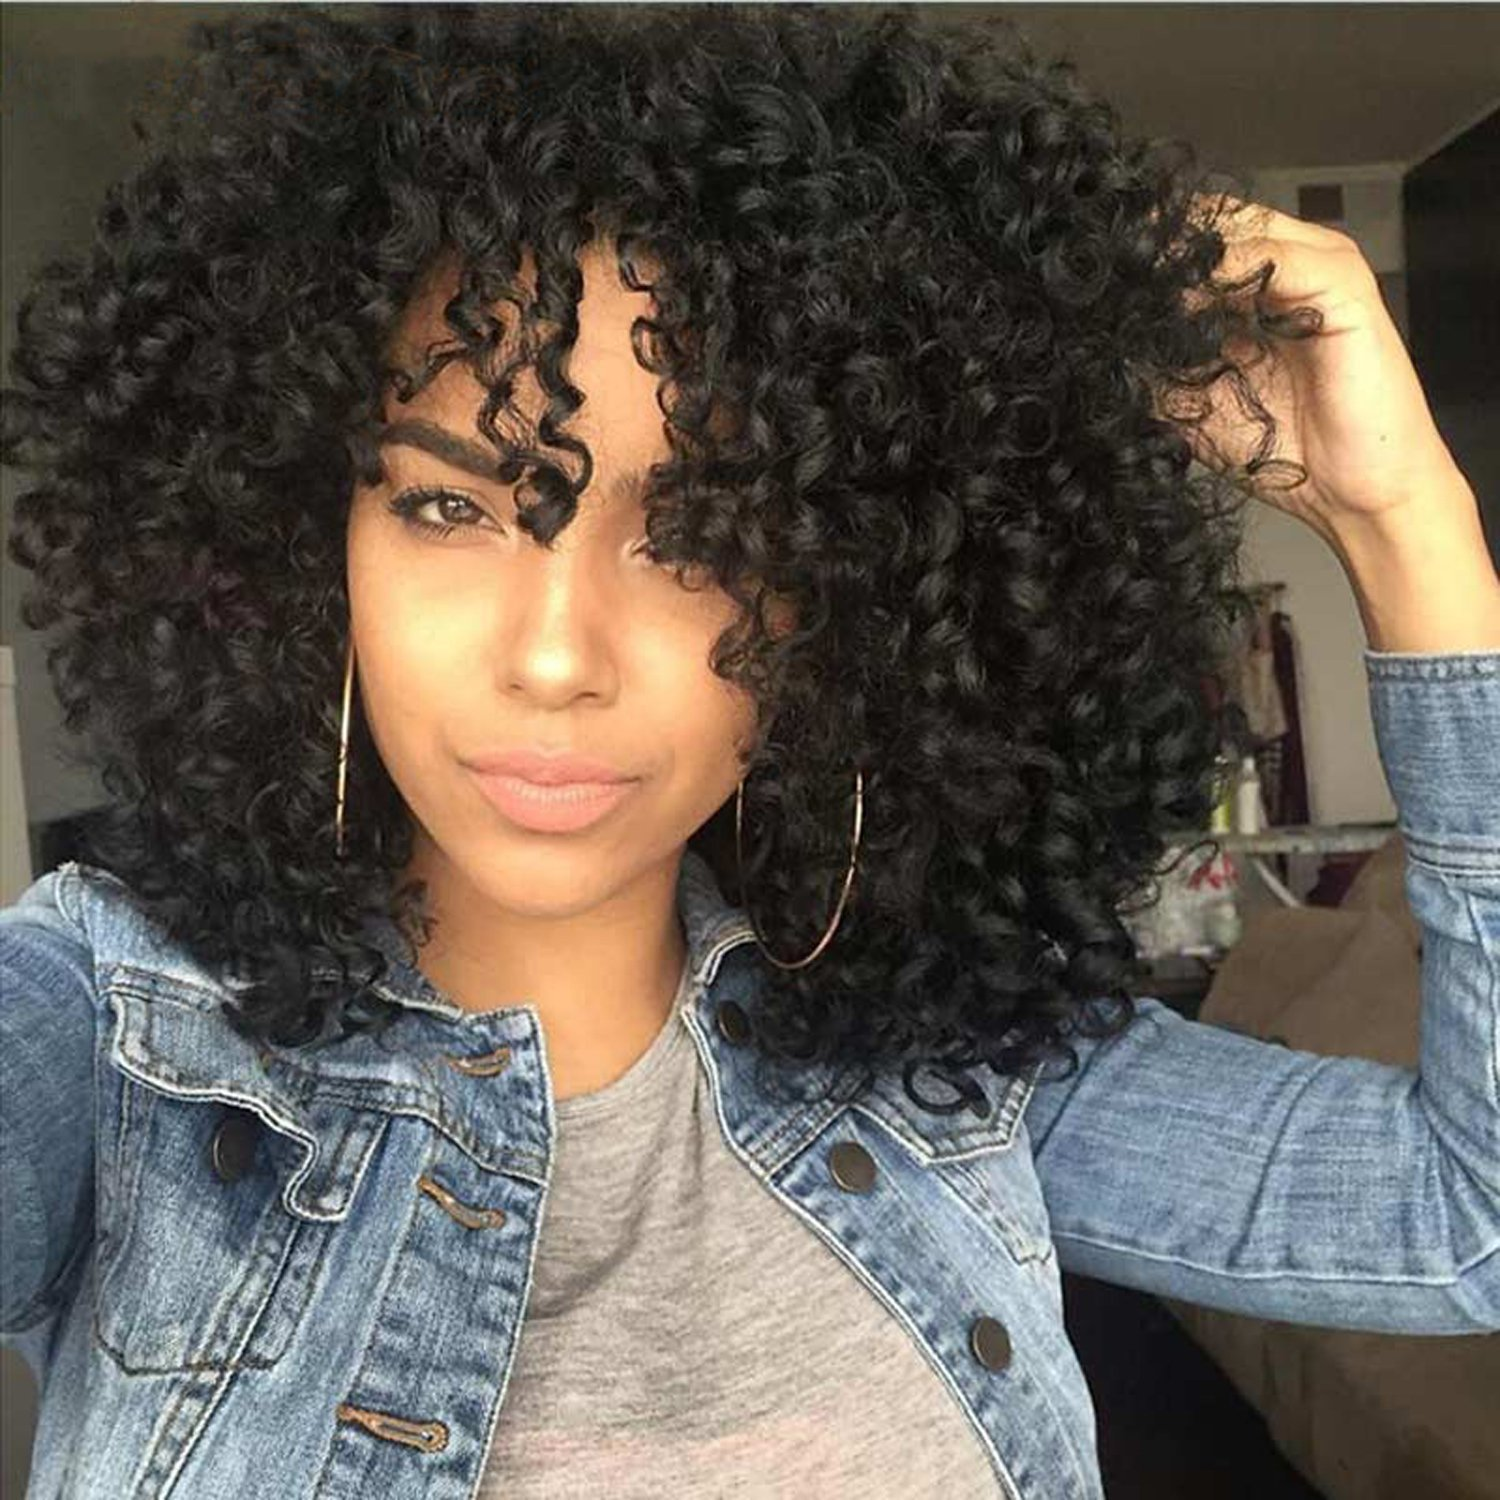 Amazon Com Xinran Short Curly Afro Wig For Black Women Black Kinky Curly Wig With Bangs Natural Synthetic Curly Full Wig Beauty